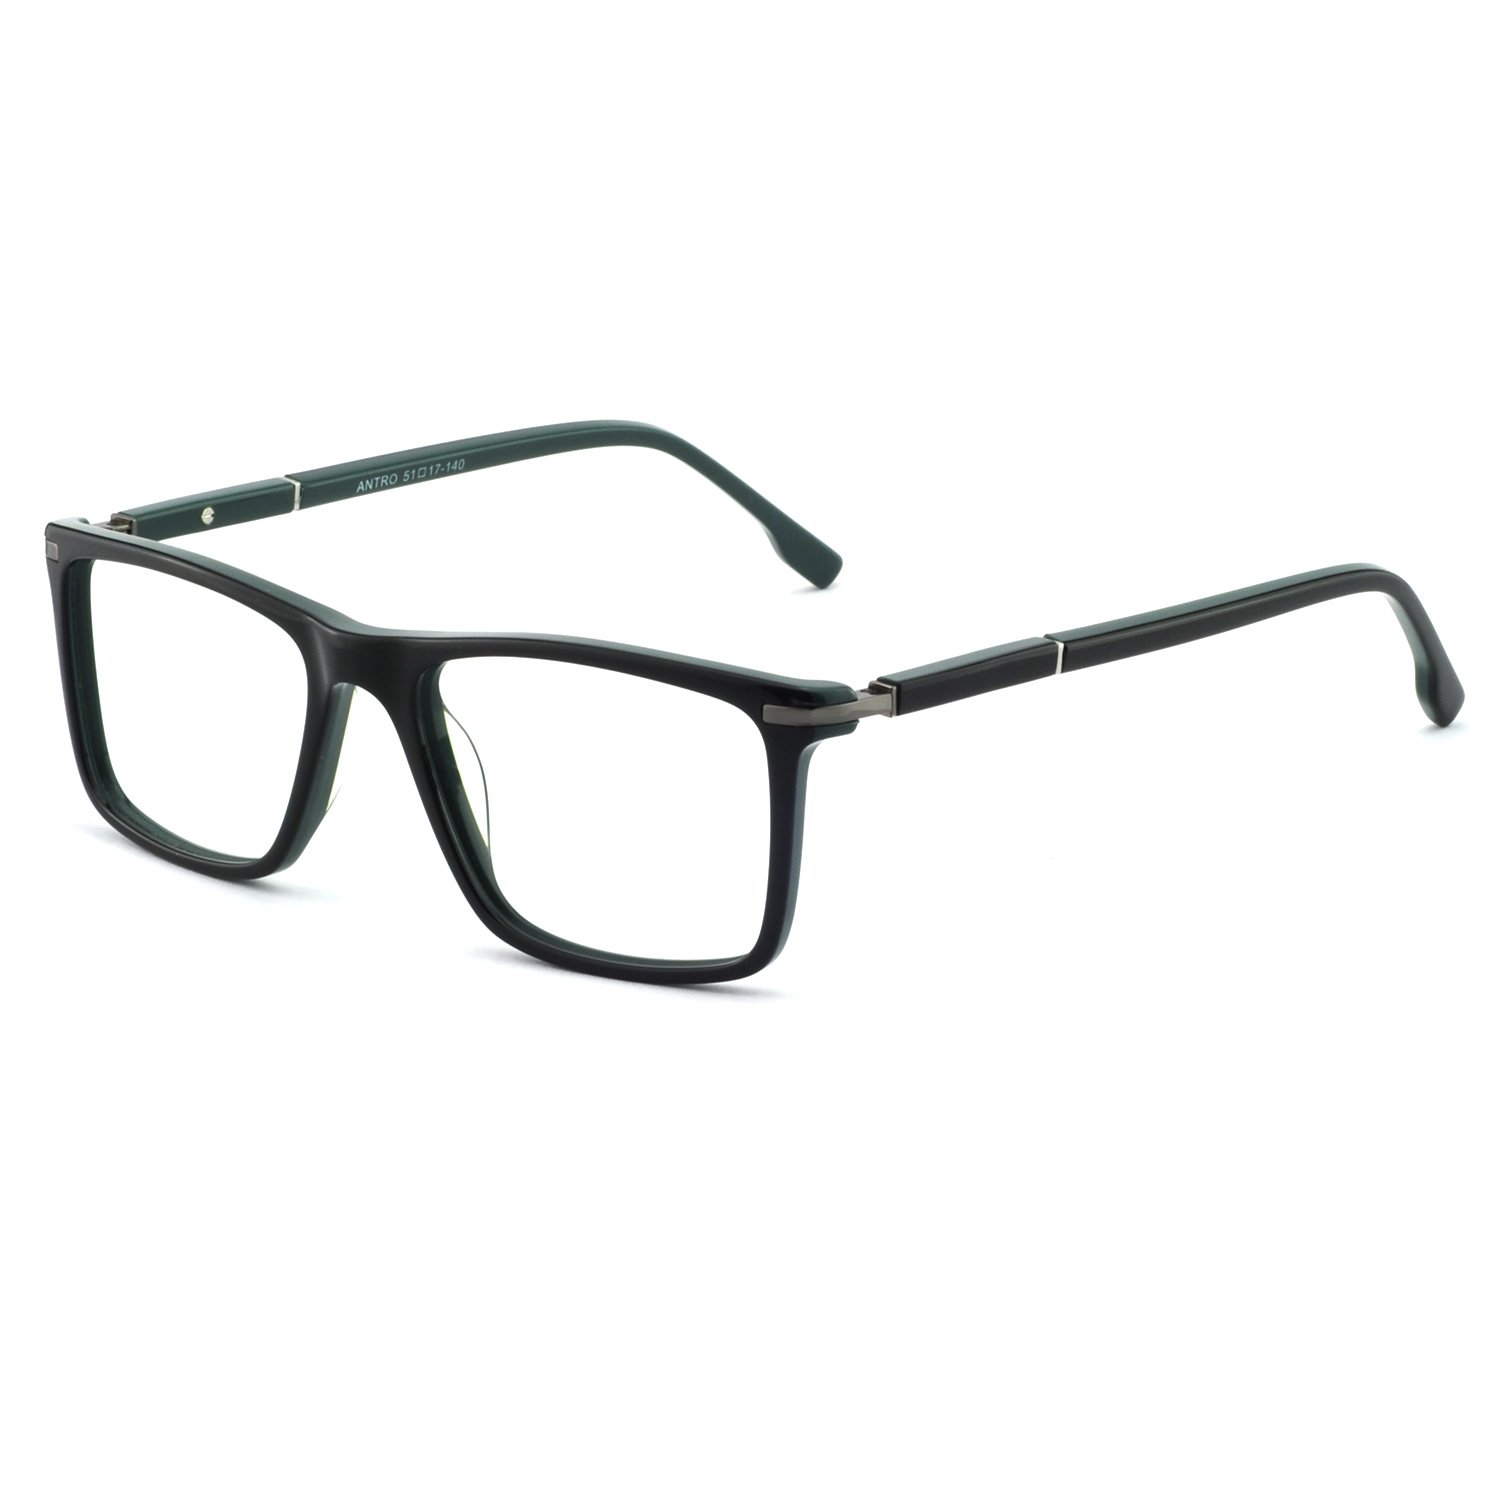 OCCI CHIARI Mens Rectangle Fashion Stylish Acetate Eyewear Frame with Clear Lens 51mm (Black/Green,51) by OCCI CHIARI